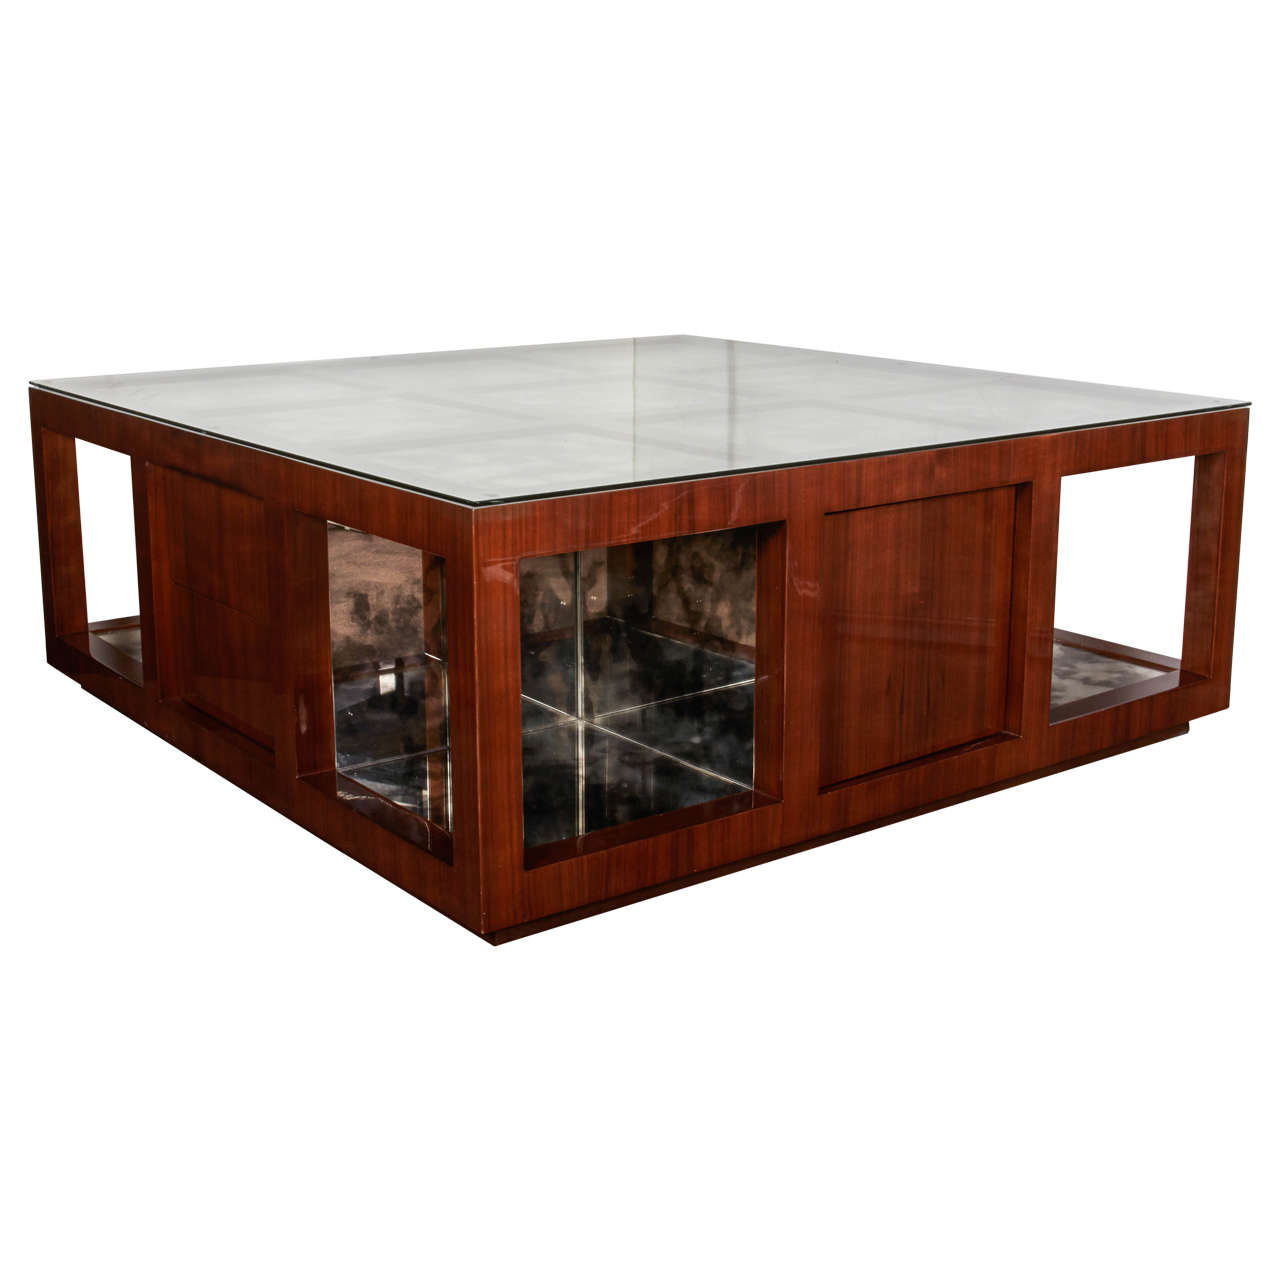 Grand scale hollywood coffee table in walnut wood with for Mirror and wood coffee table